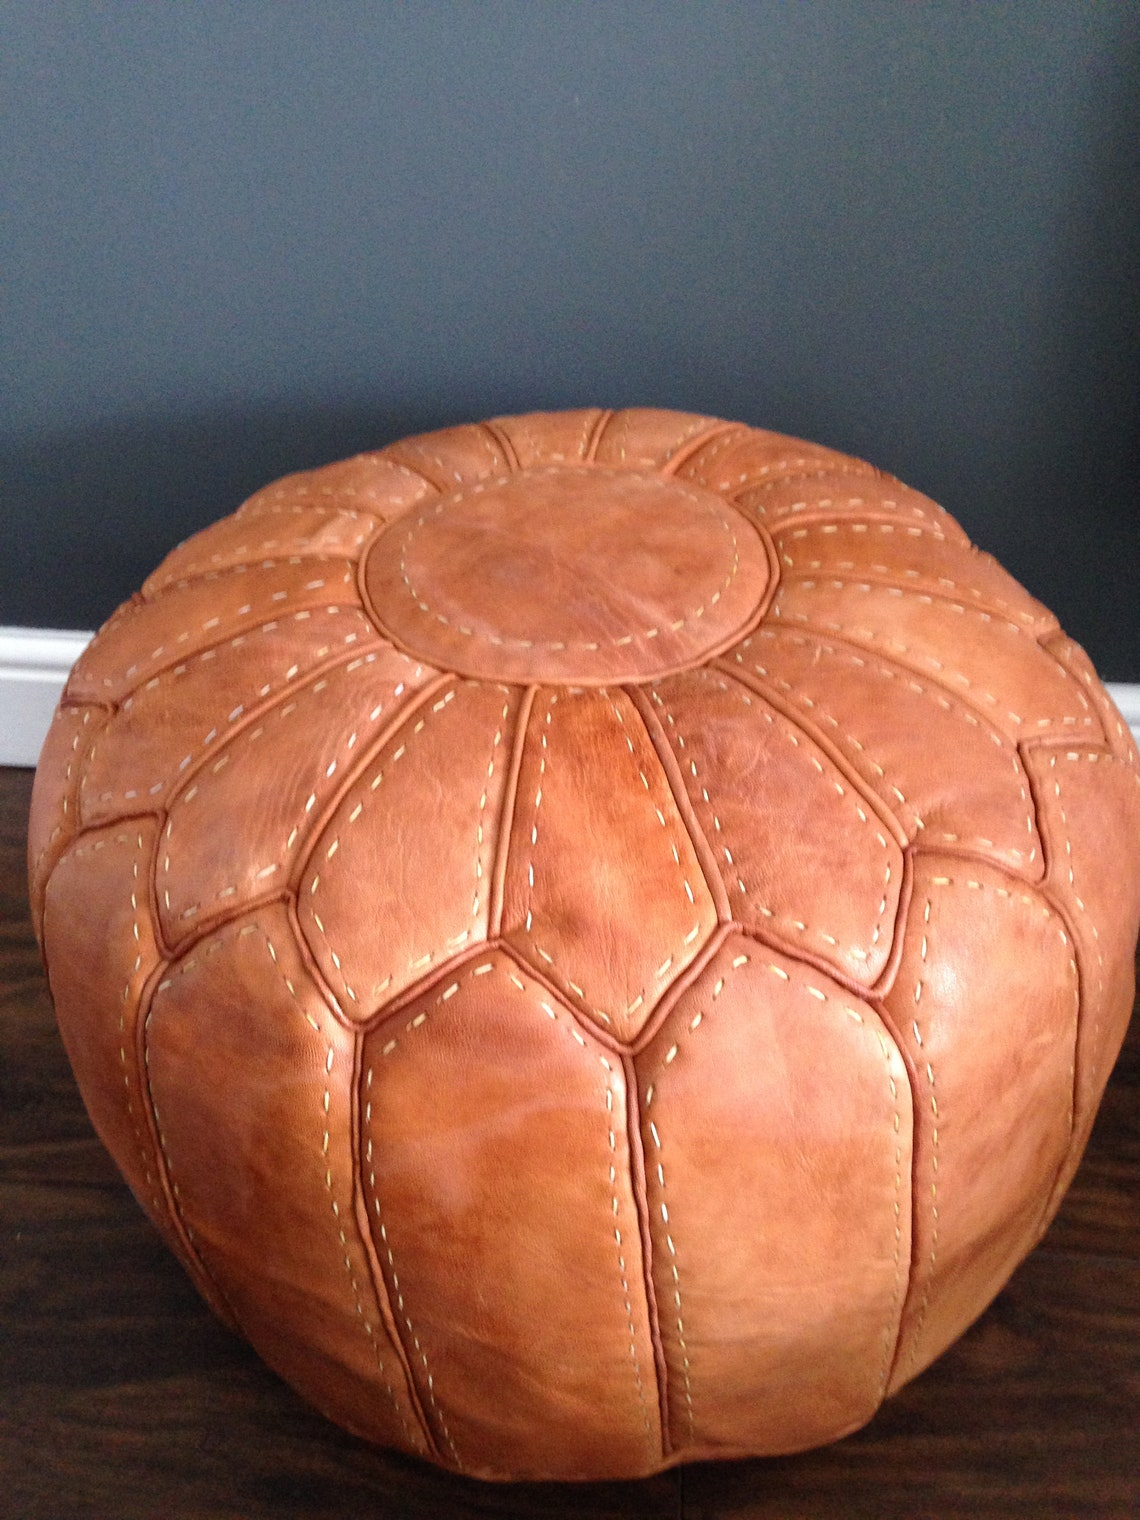 Moroccan Leather Pouffe (filled) - Natural Tan stitched